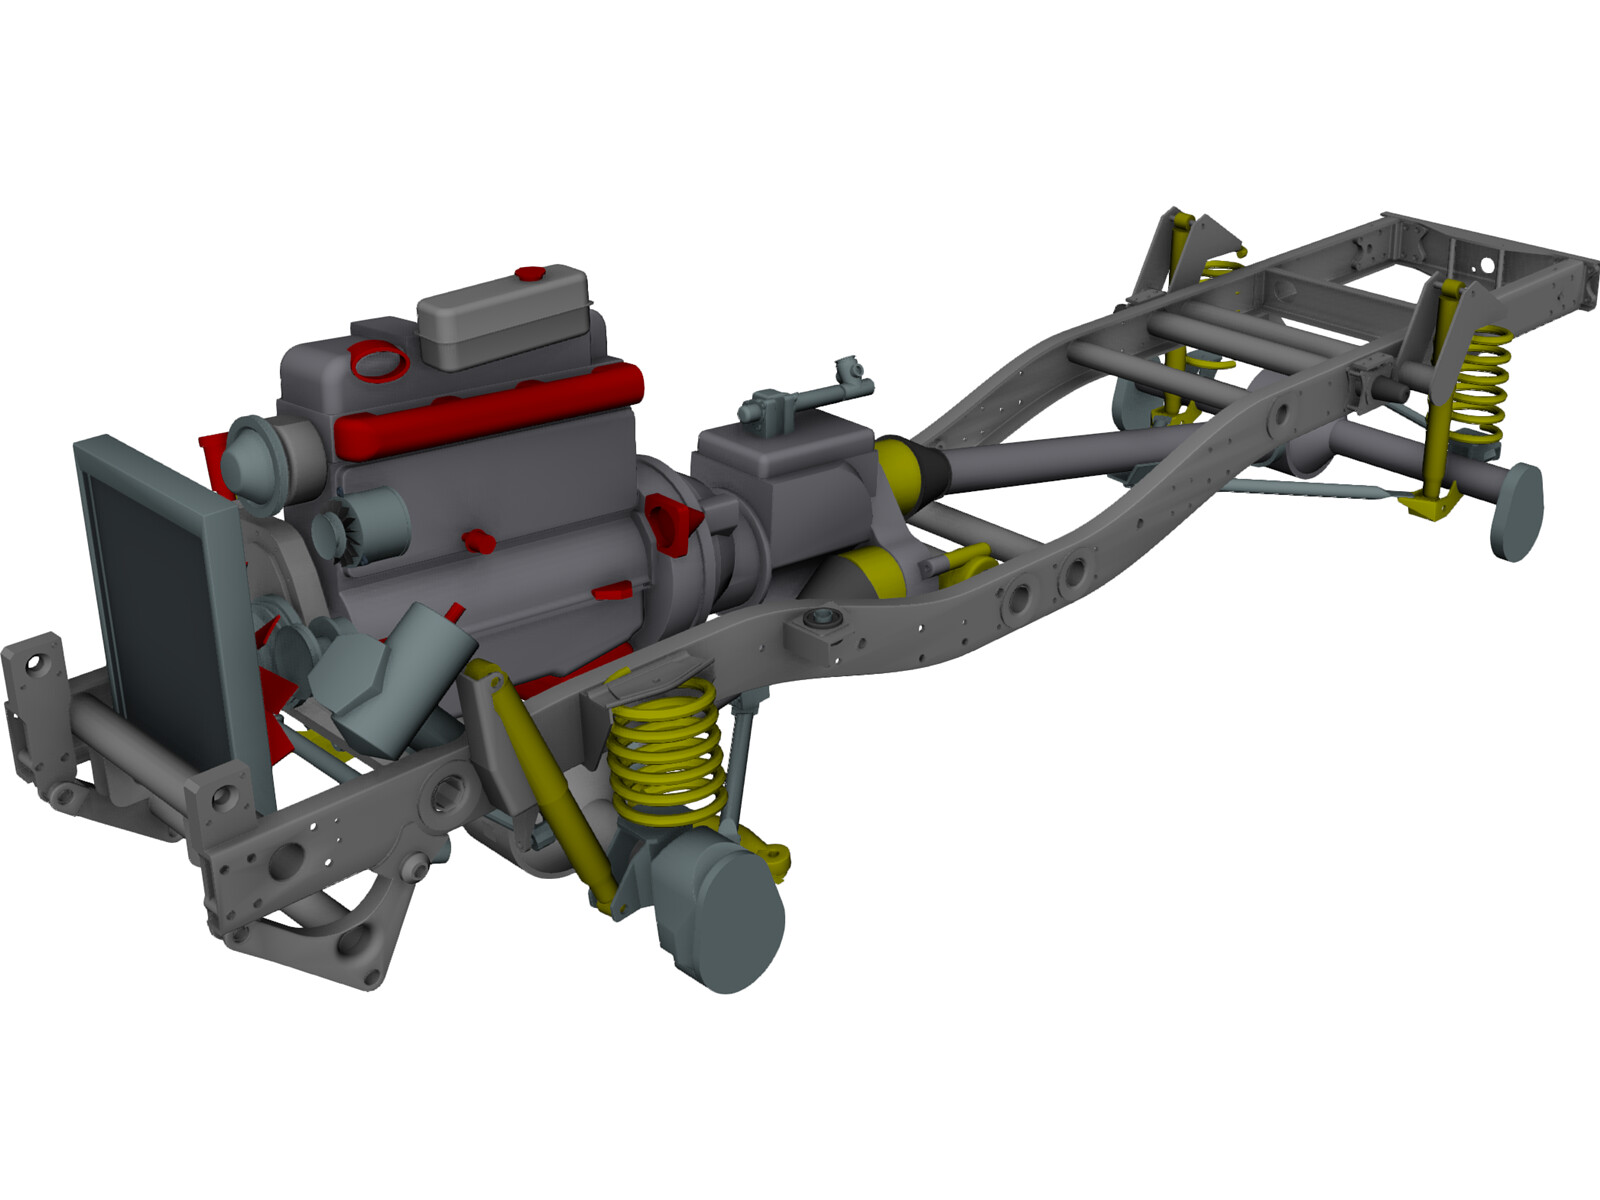 Mercedes-Benz Unimog Chassis 3D CAD Model